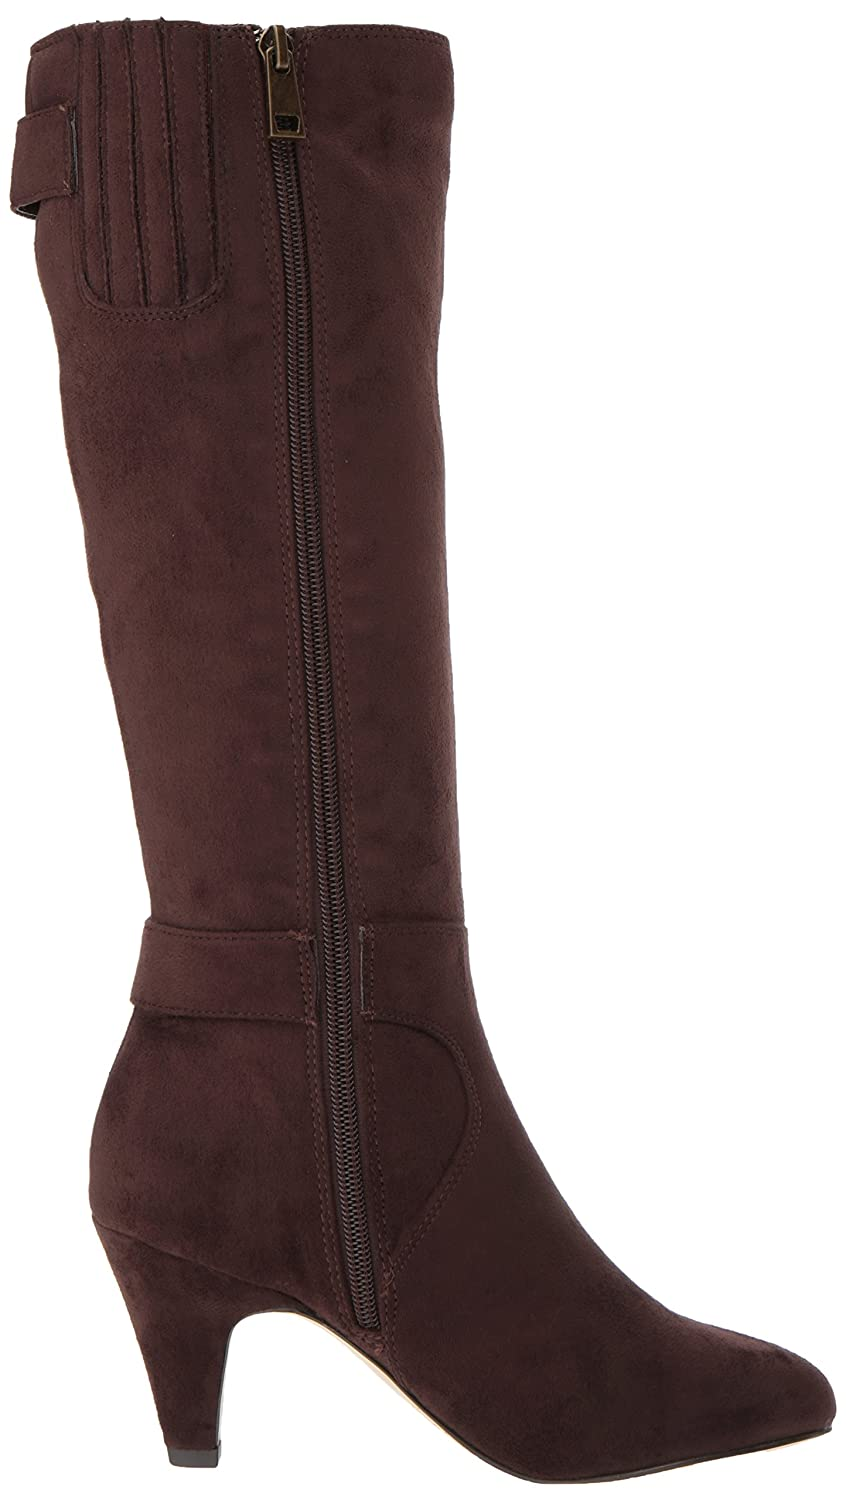 Bella Vita Women's Toni Ii Harness Boot Super B073NQ2BTW 9.5 B(M) US|Brown Super Boot Suede 25c7d1